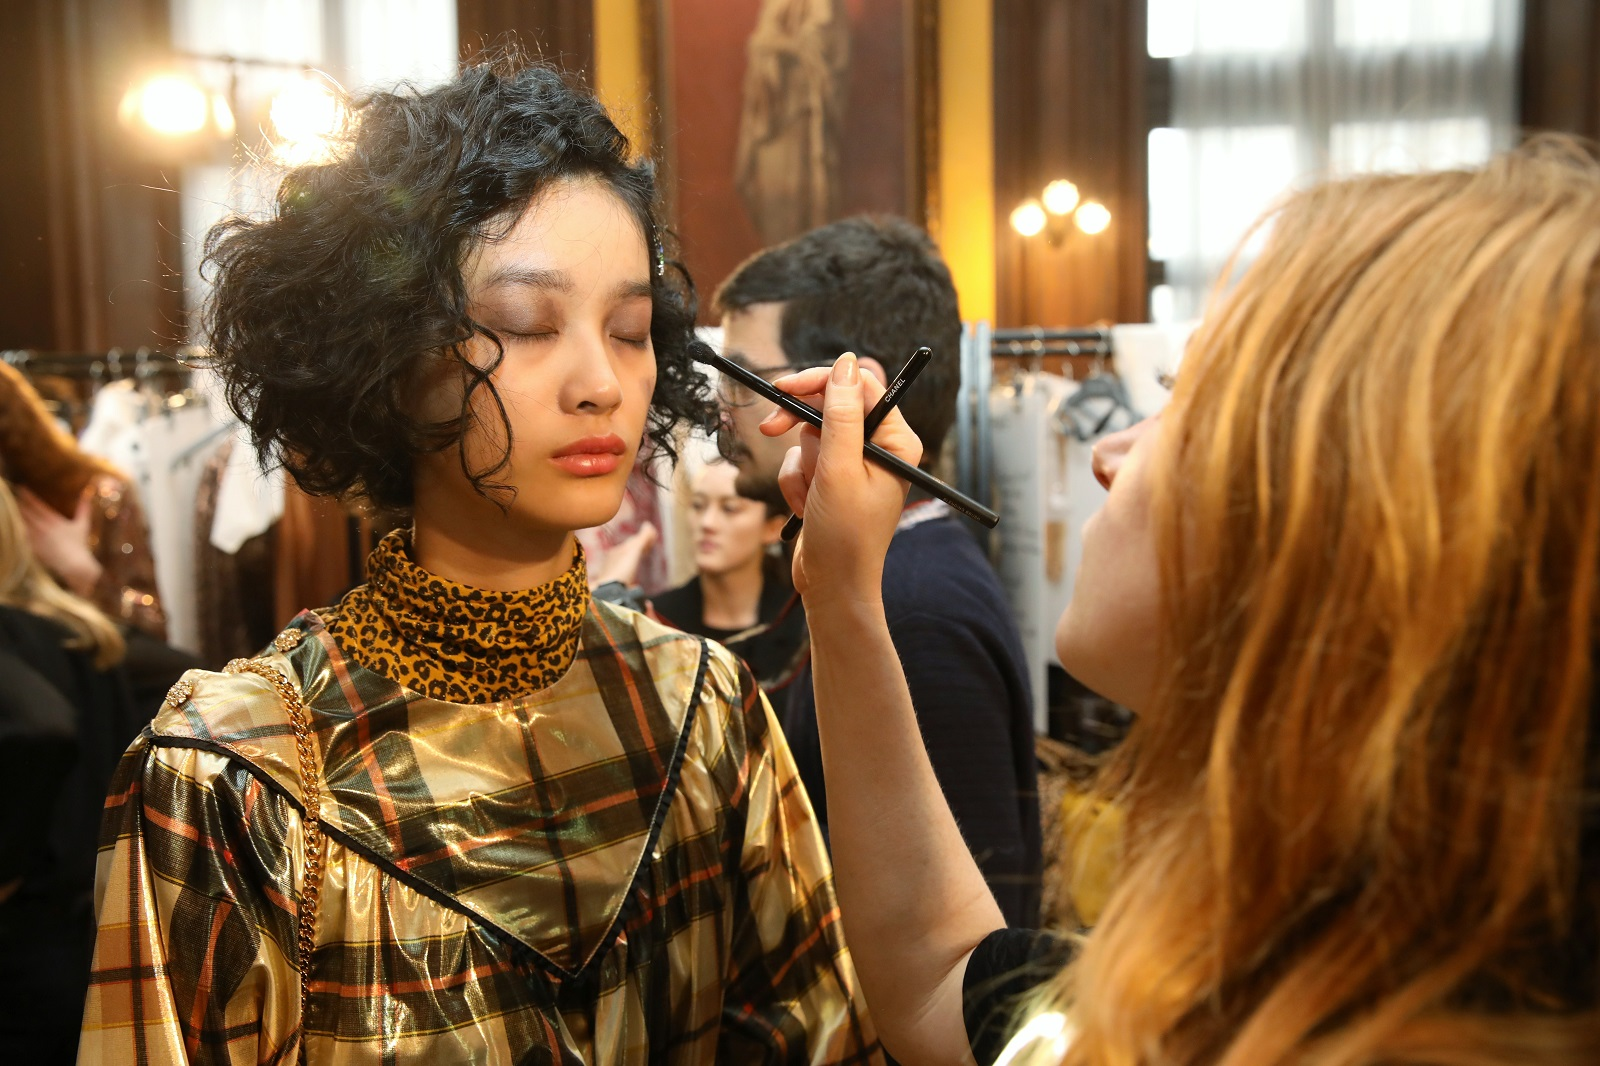 Backstage makeup tips to try from Paris Fashion Week AW19